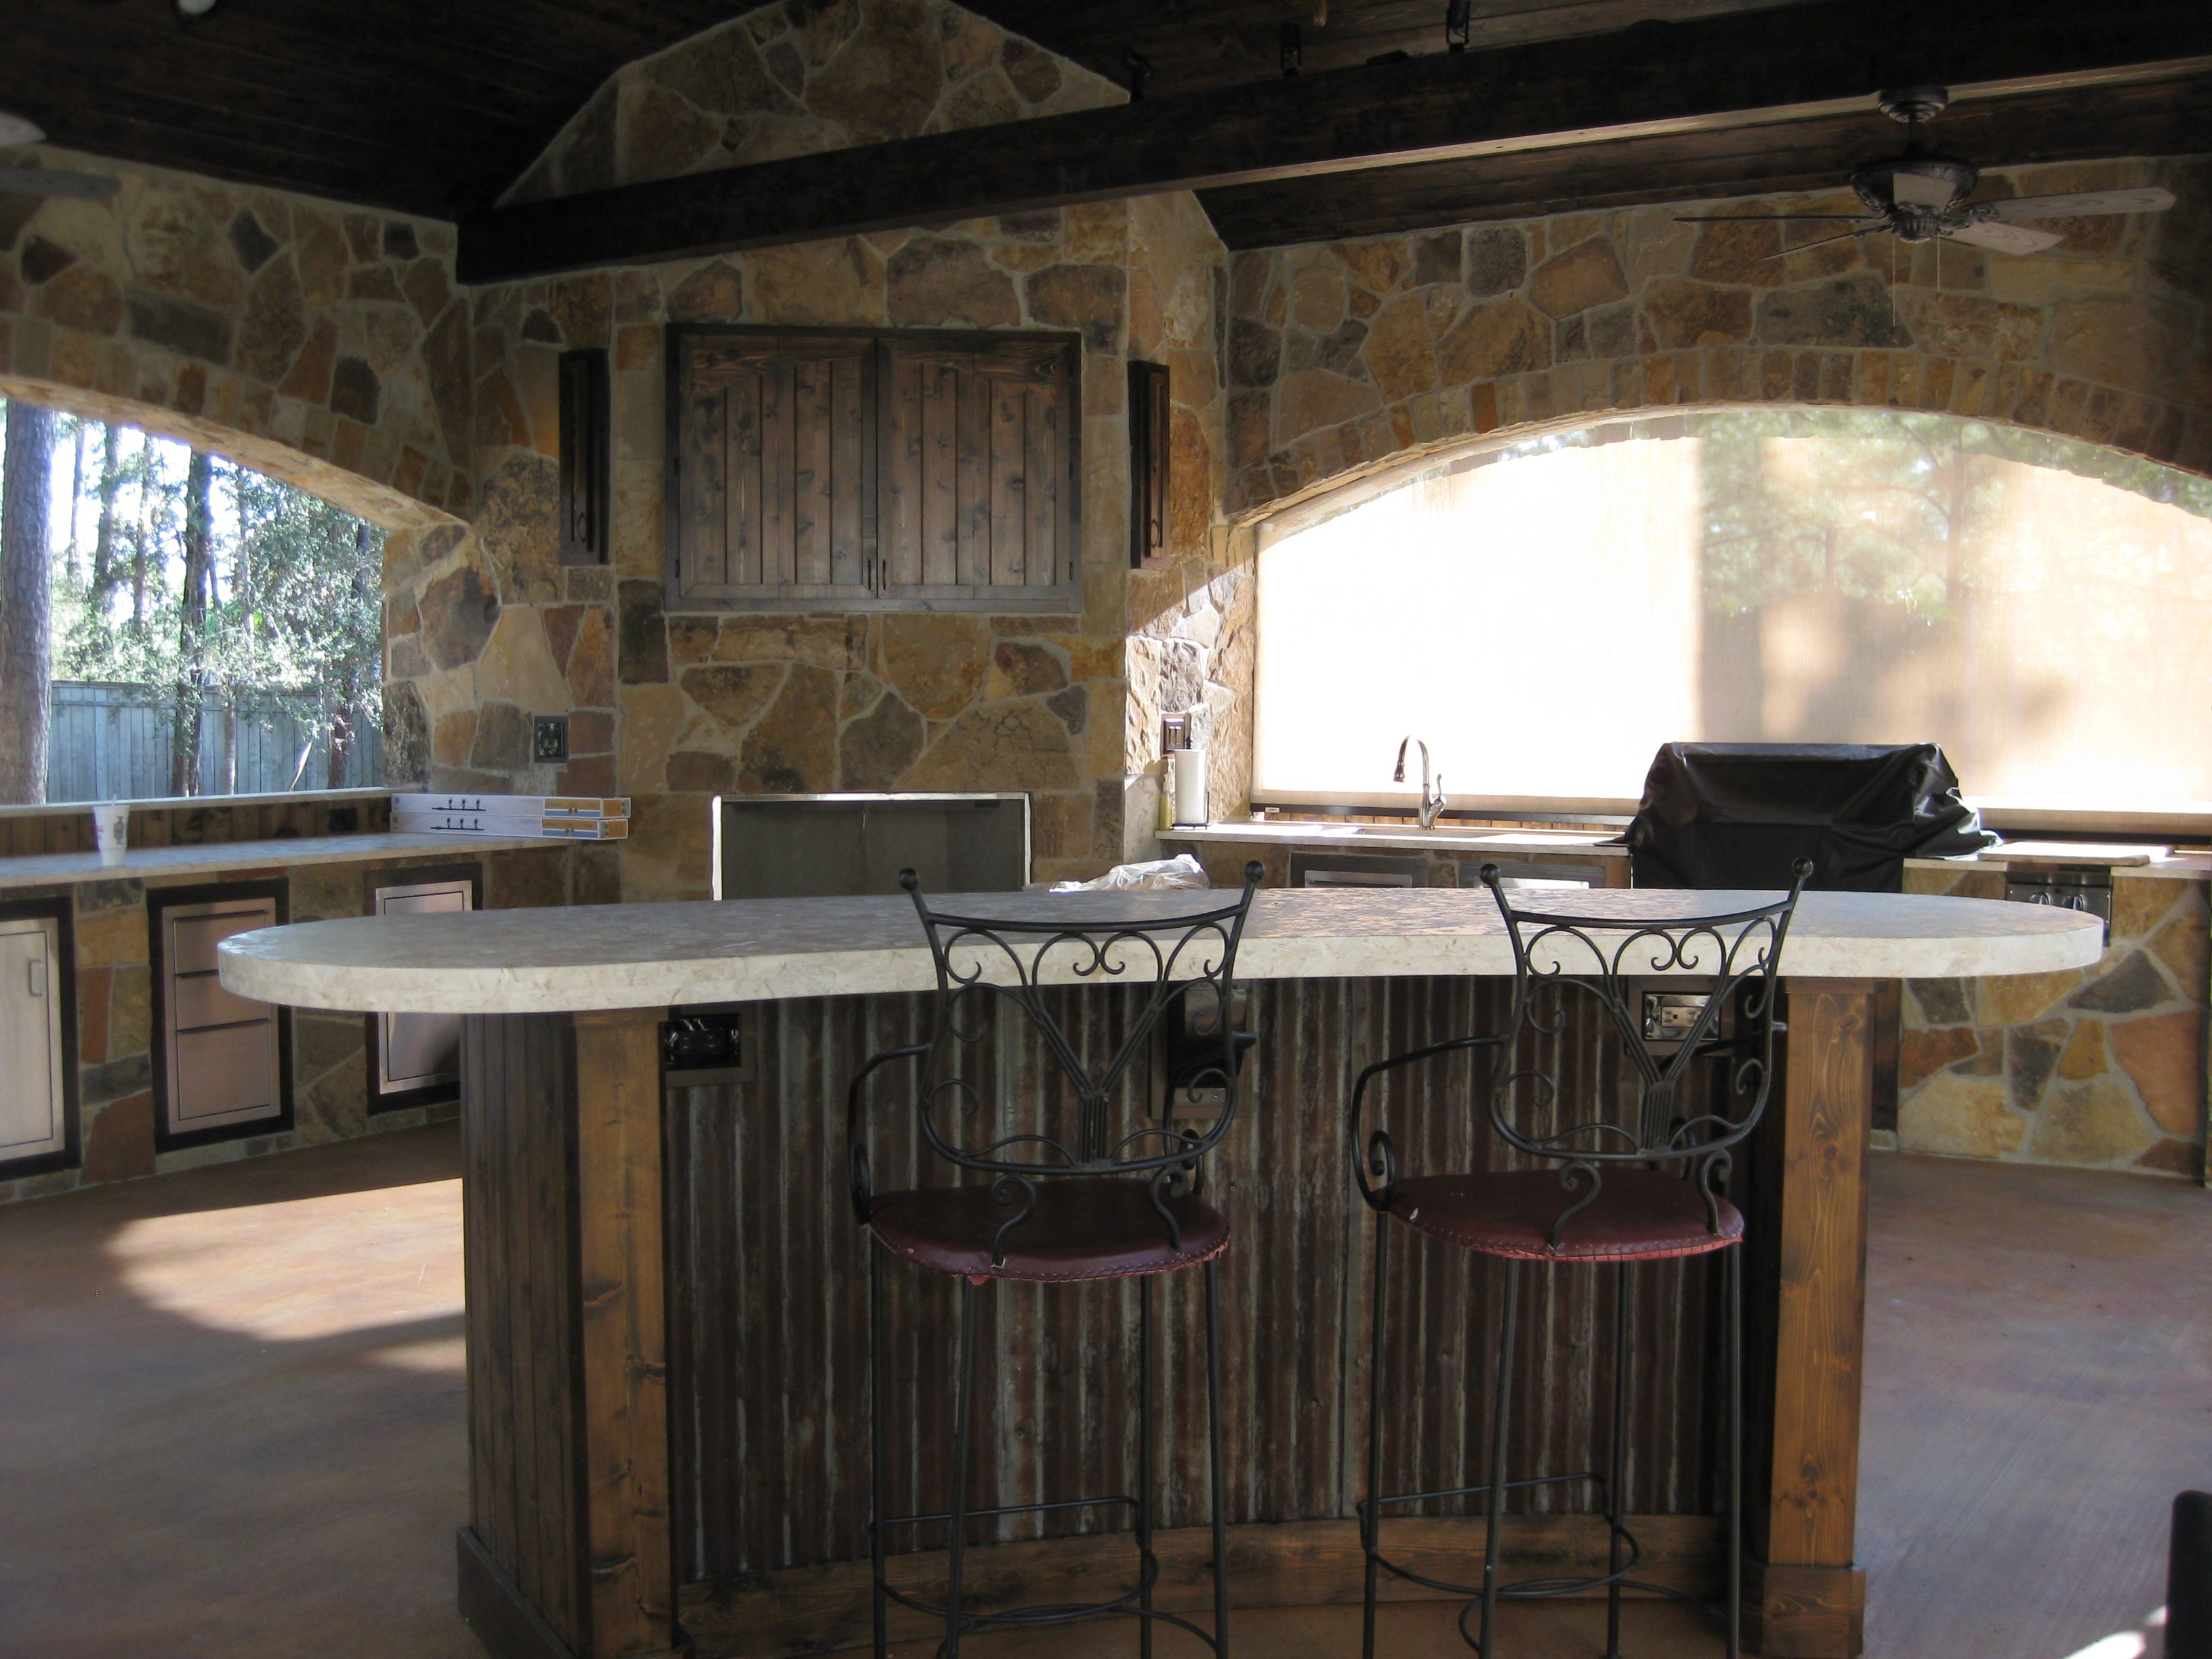 Rustic Outdoor Kitchen Renovation Costs Nj Kitchens And Bars Built Out Of Galvalume Stylish